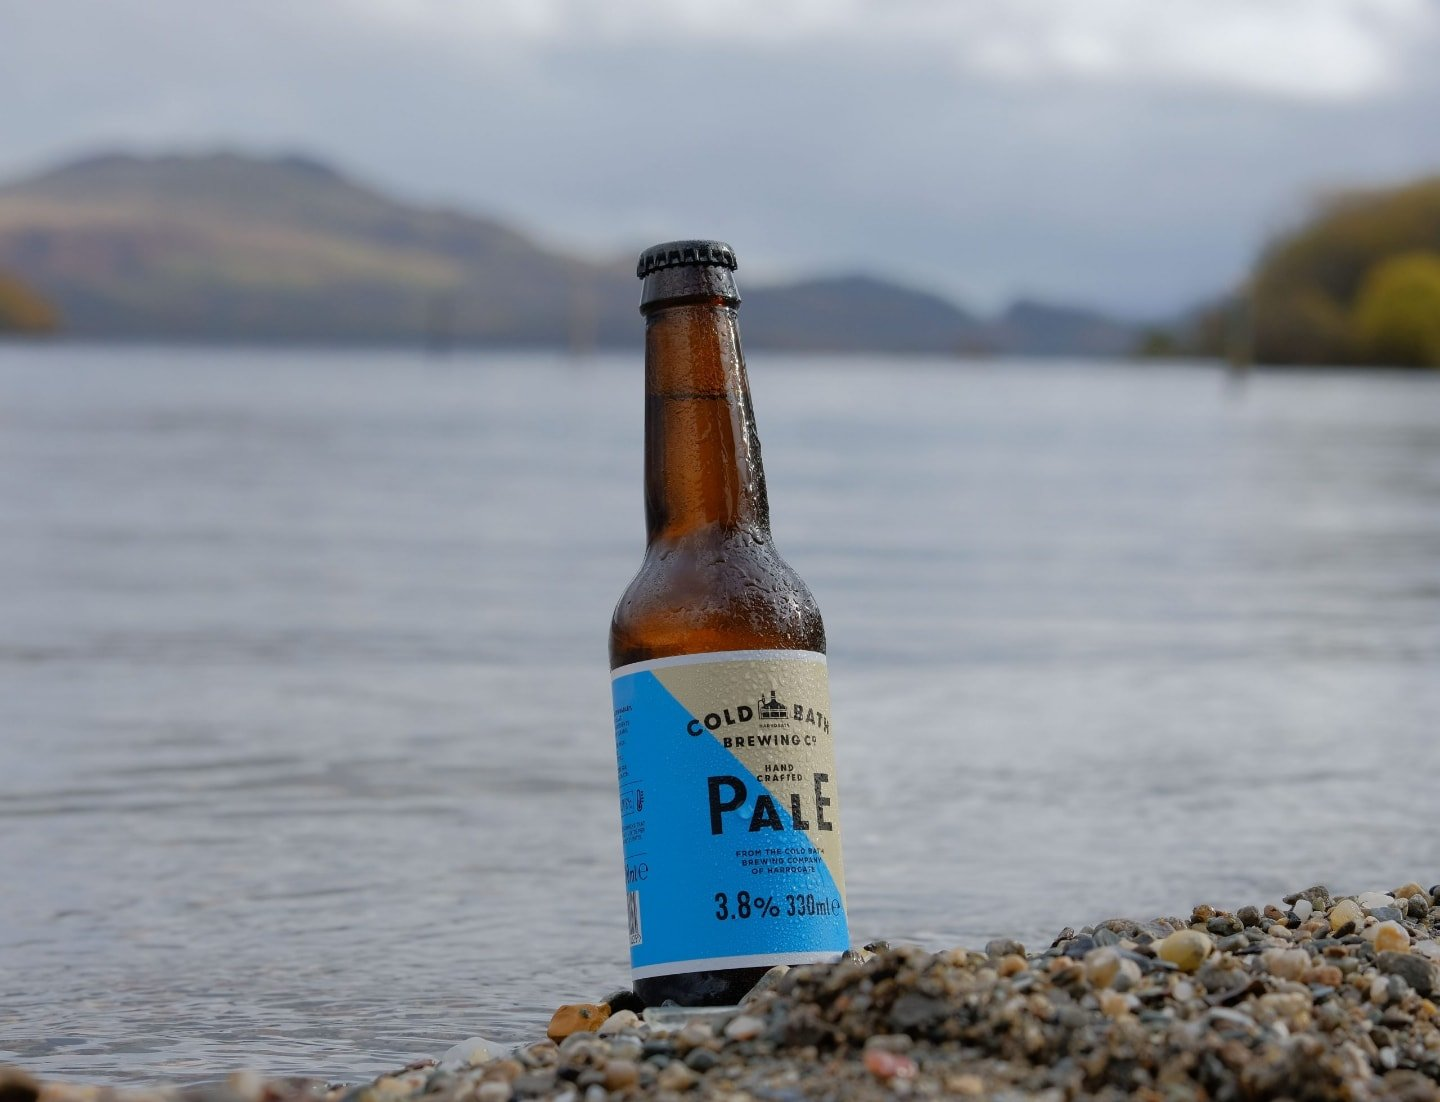 Cold Bath Brewing Co Hand Crafted Pale